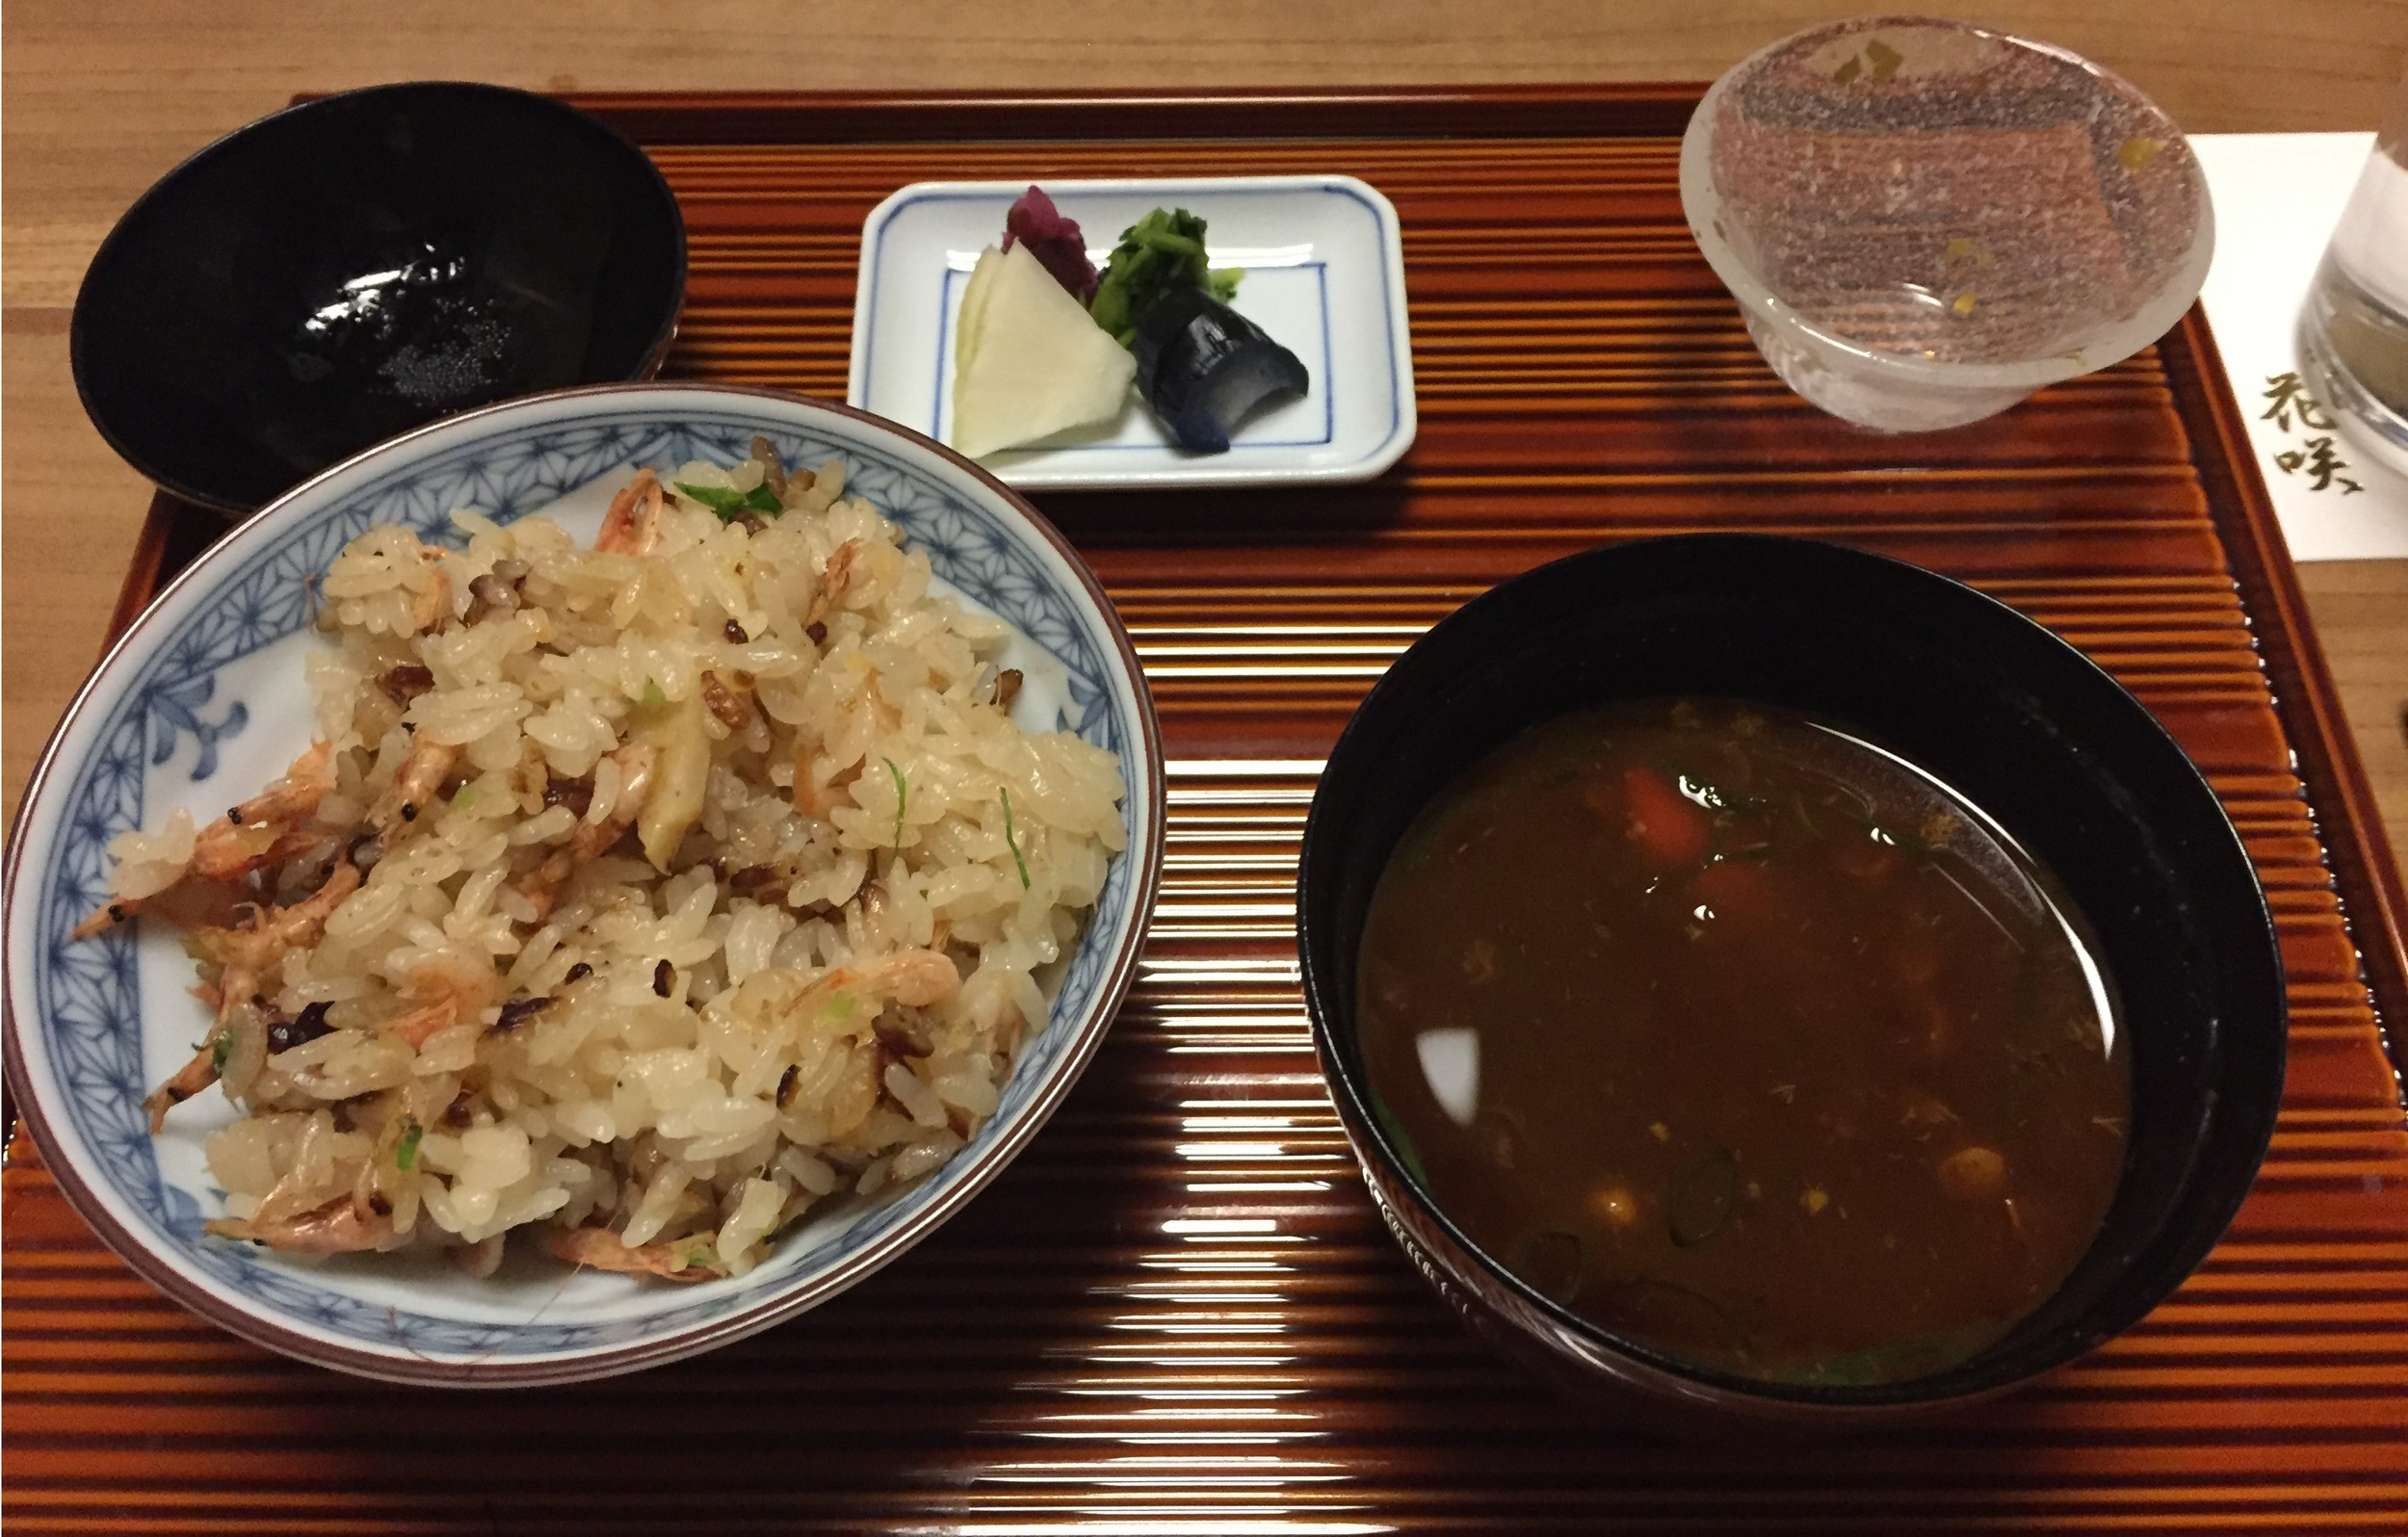 Bamboo rice with red miso soup and pickles